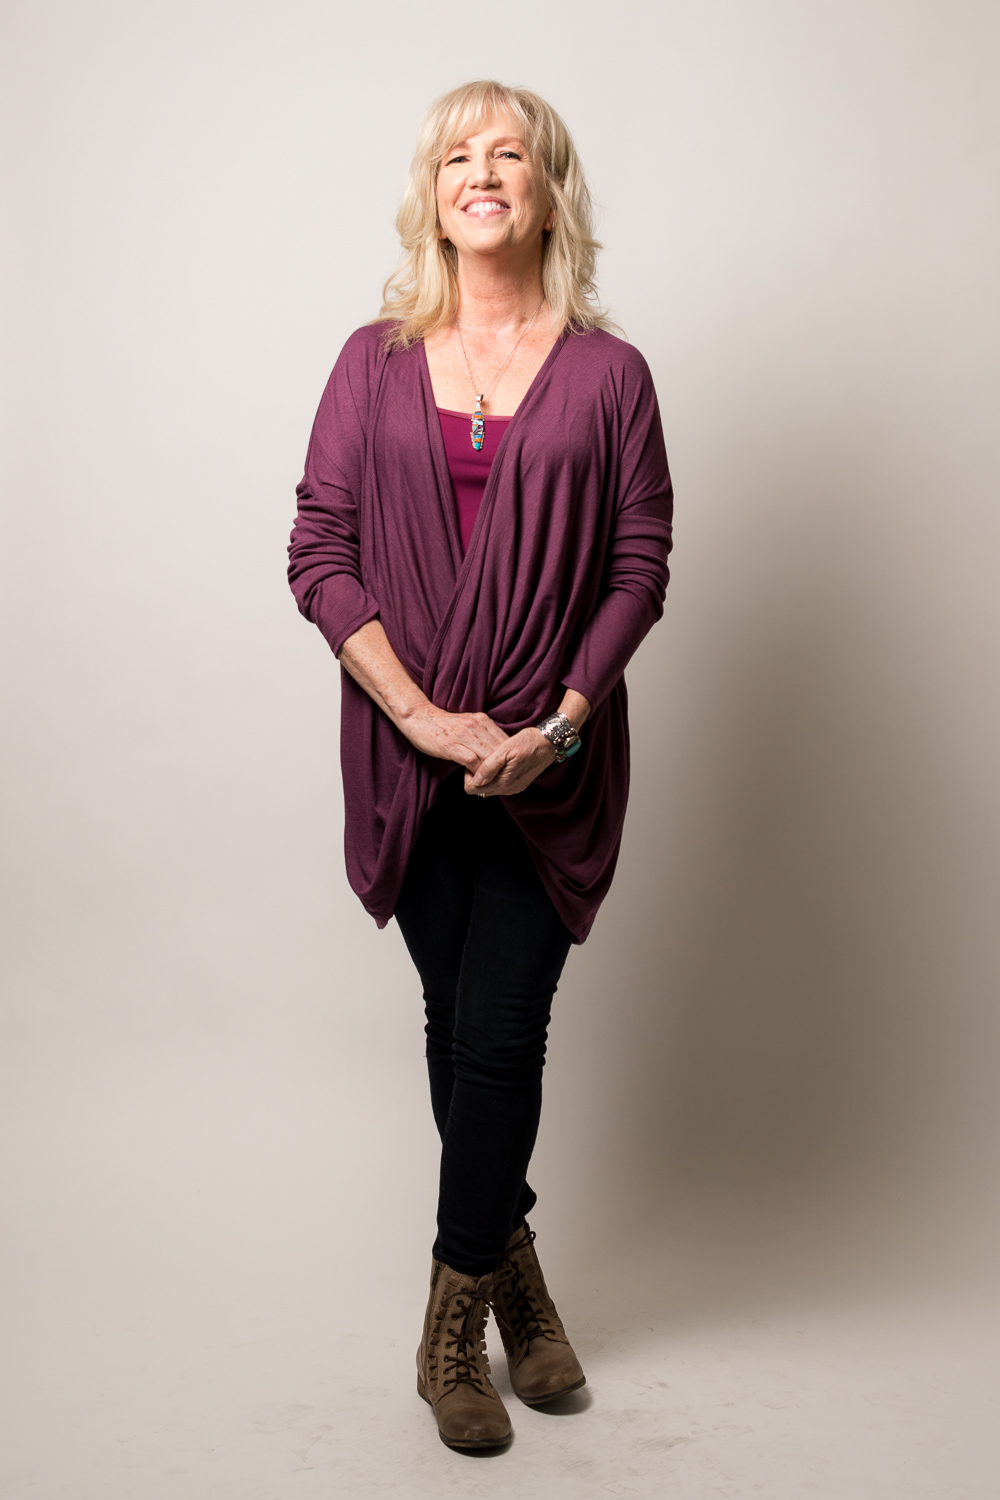 Lynn McKee is styled by Raquel Greer Gordian in a casual look for fun nights out in Austin, Texas.